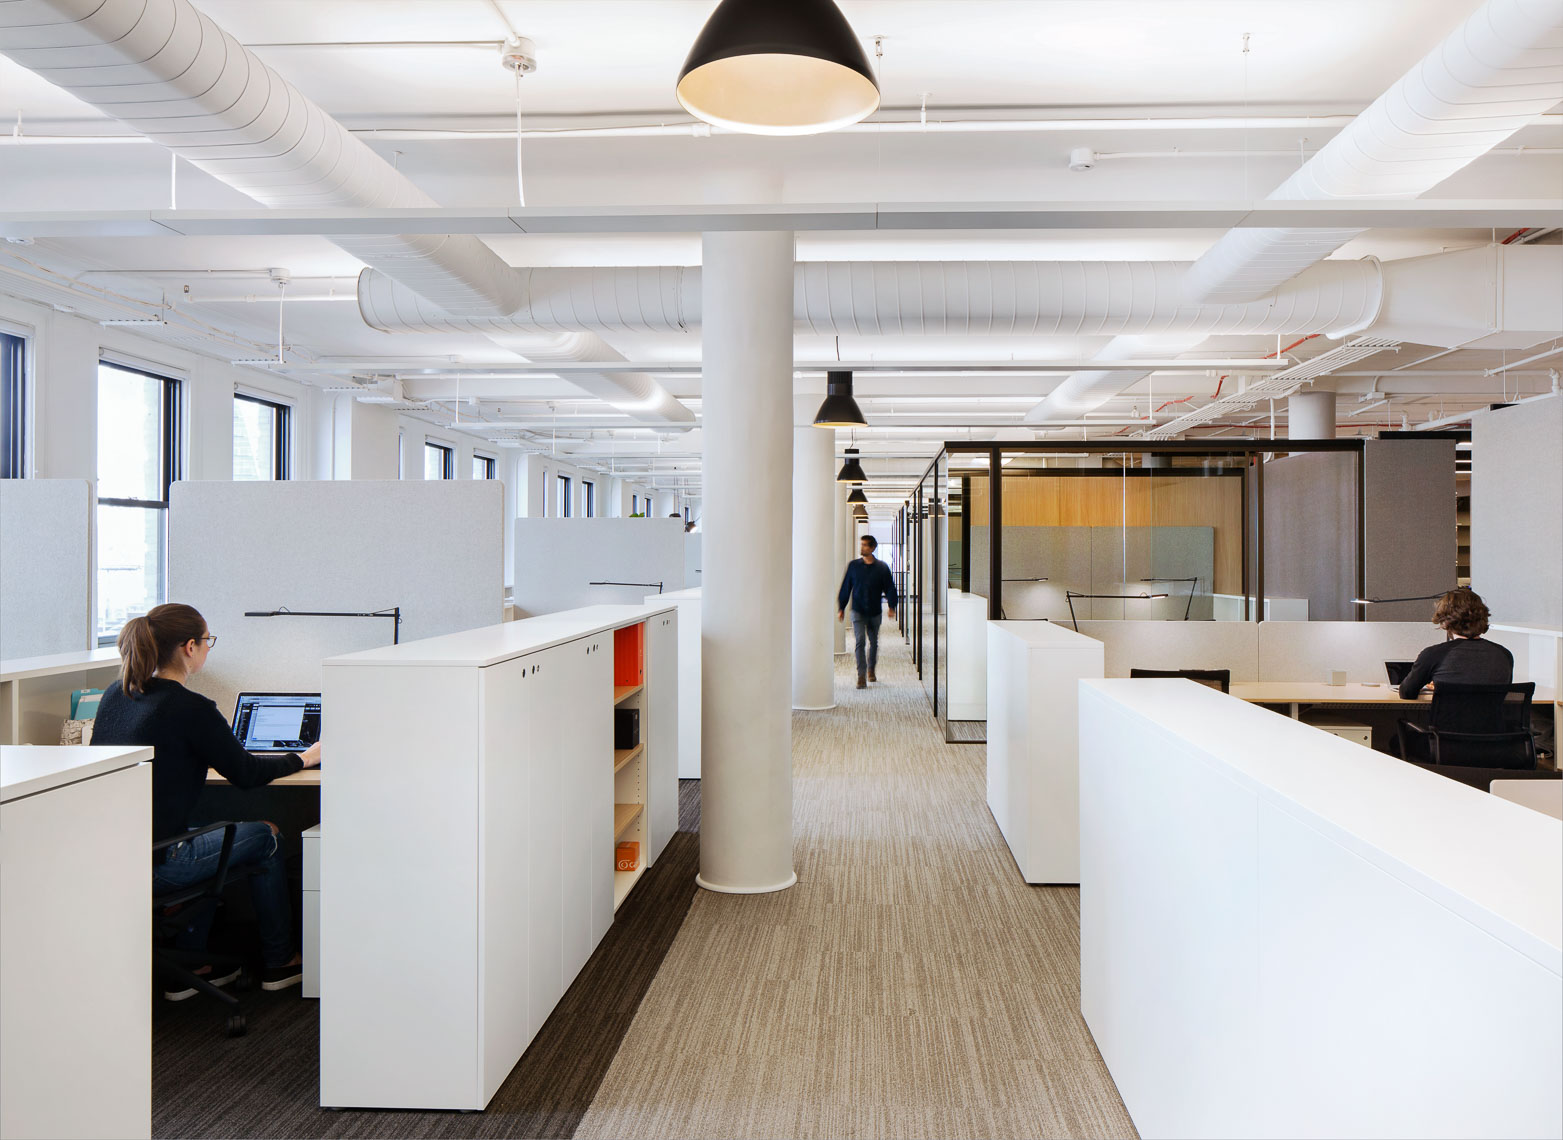 A long white walled hallway flanked by open work areas and private offices